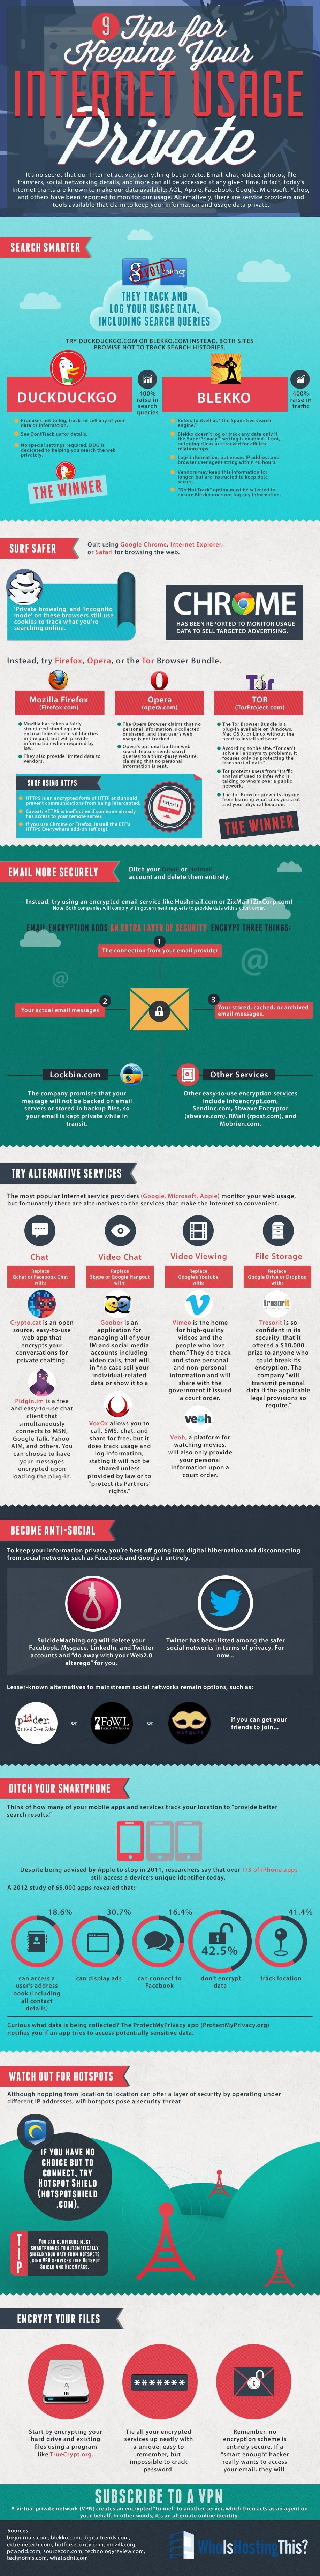 keep-internet-footprint-private-infographic